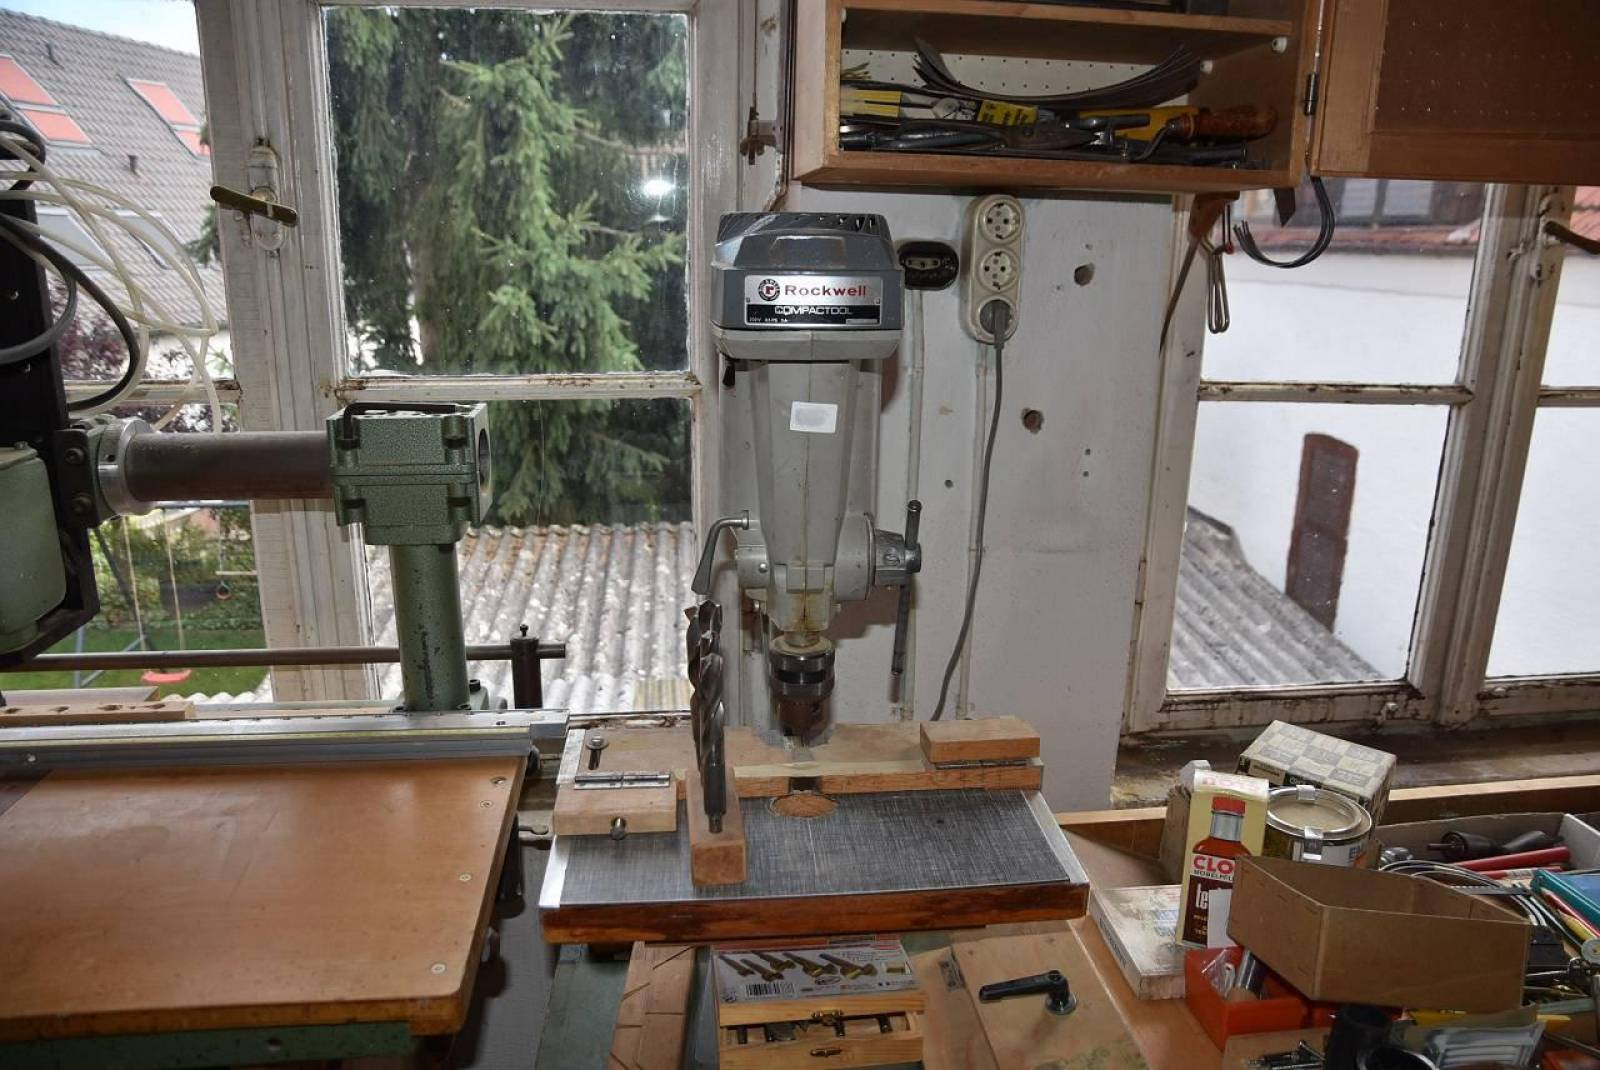 Pillar drilling machine ROCKWELL COMPACTOOL buy second-hand